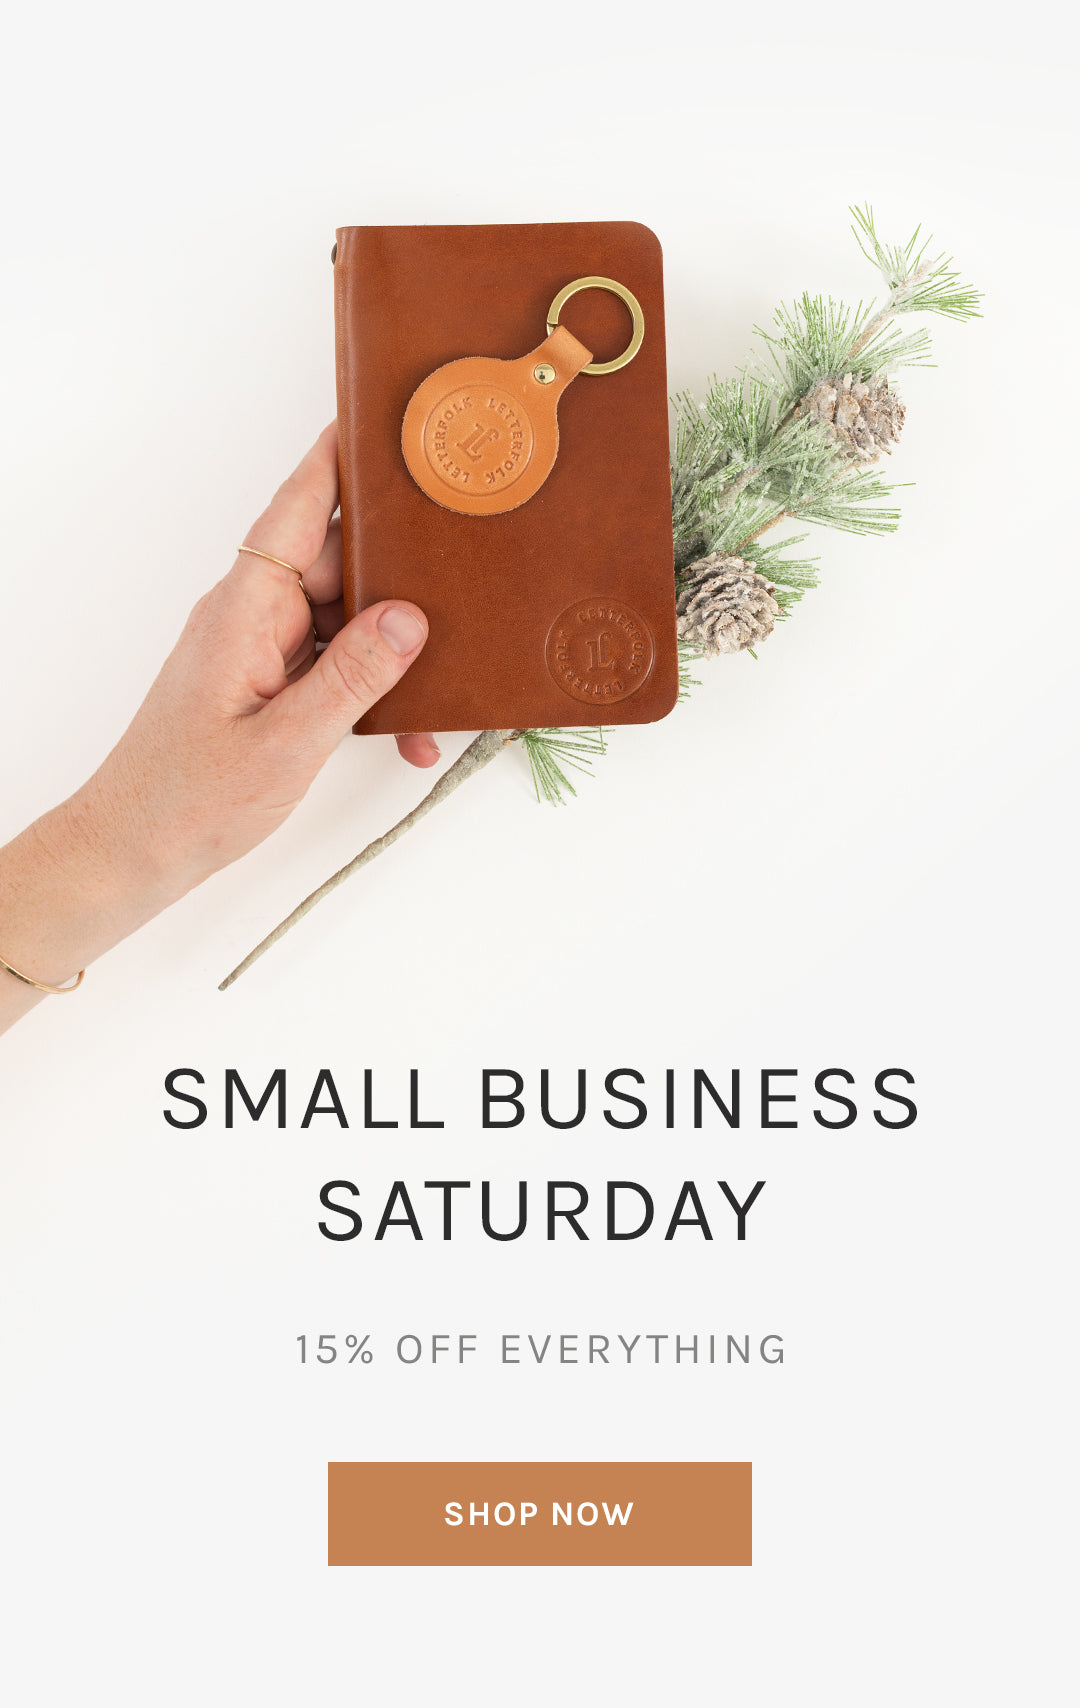 Small Business Saturday 15% Off Everything